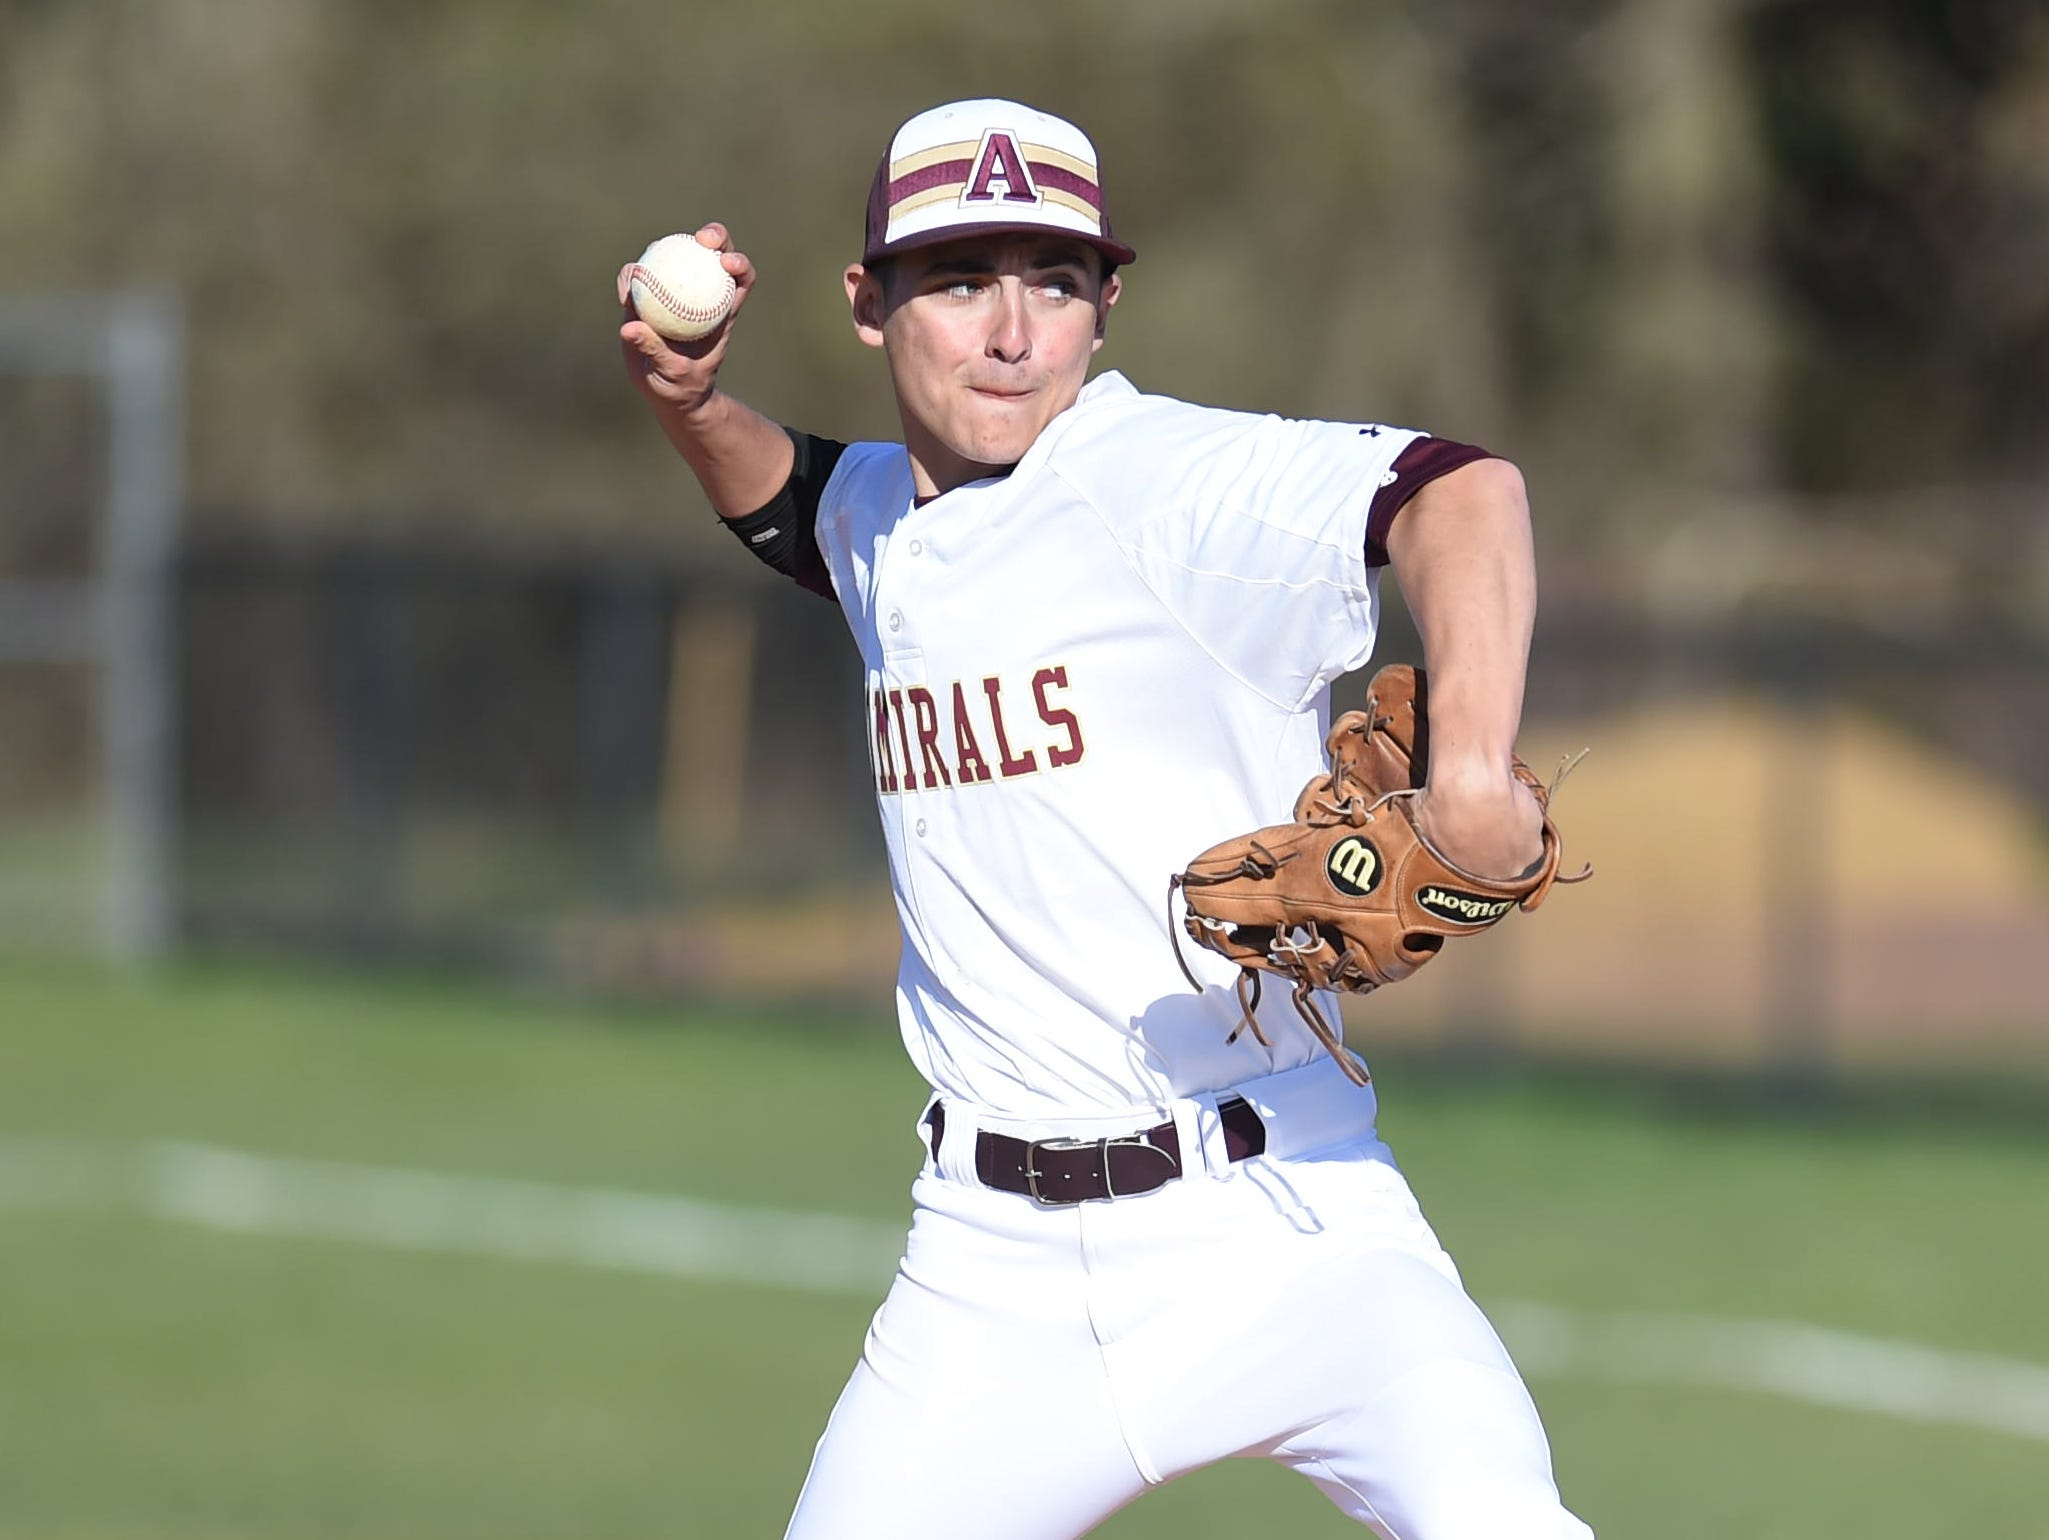 Arlington's Andrew Kemmerer pitches during Tuesday's home game versus John Jay.